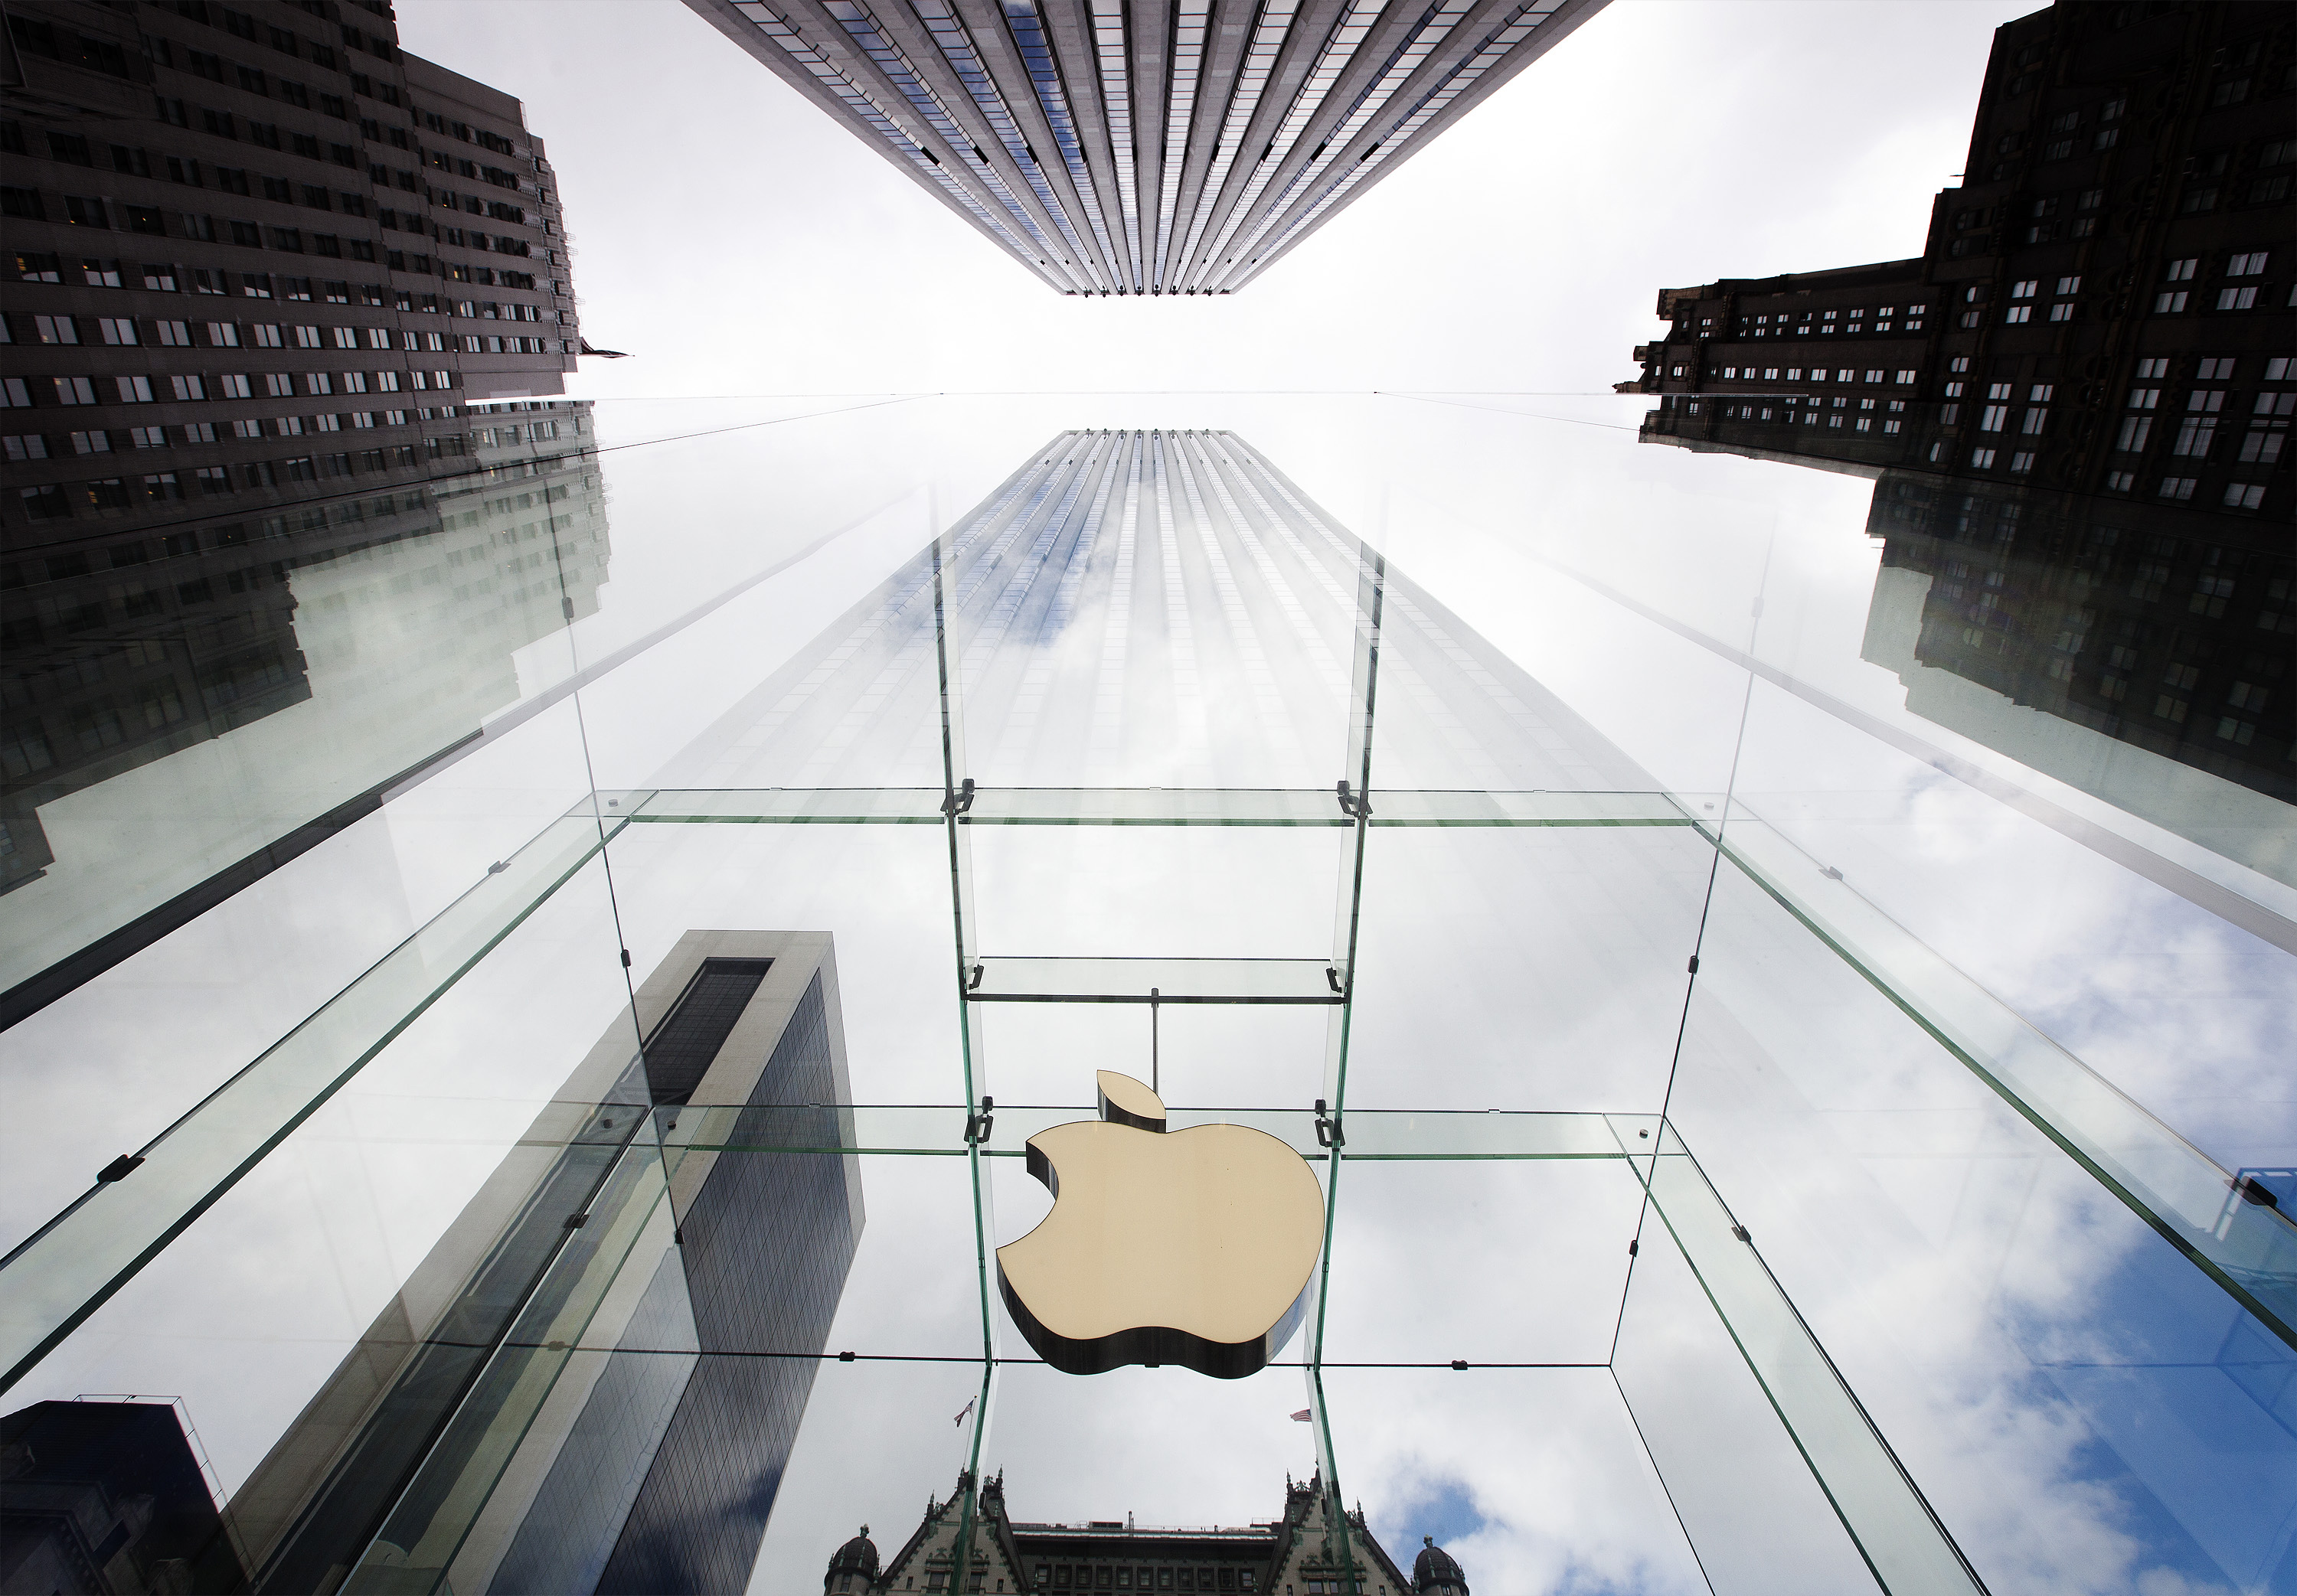 The Apple logo hangs in a glass enclosure above the 5th Ave Apple Store in New York, September 20, 2012.  Apple's iPhone 5 goes on sale tomorrow. REUTERS/Lucas Jackson (UNITED STATES - Tags: BUSINESS SCIENCE TECHNOLOGY LOGO TPX IMAGES OF THE DAY)